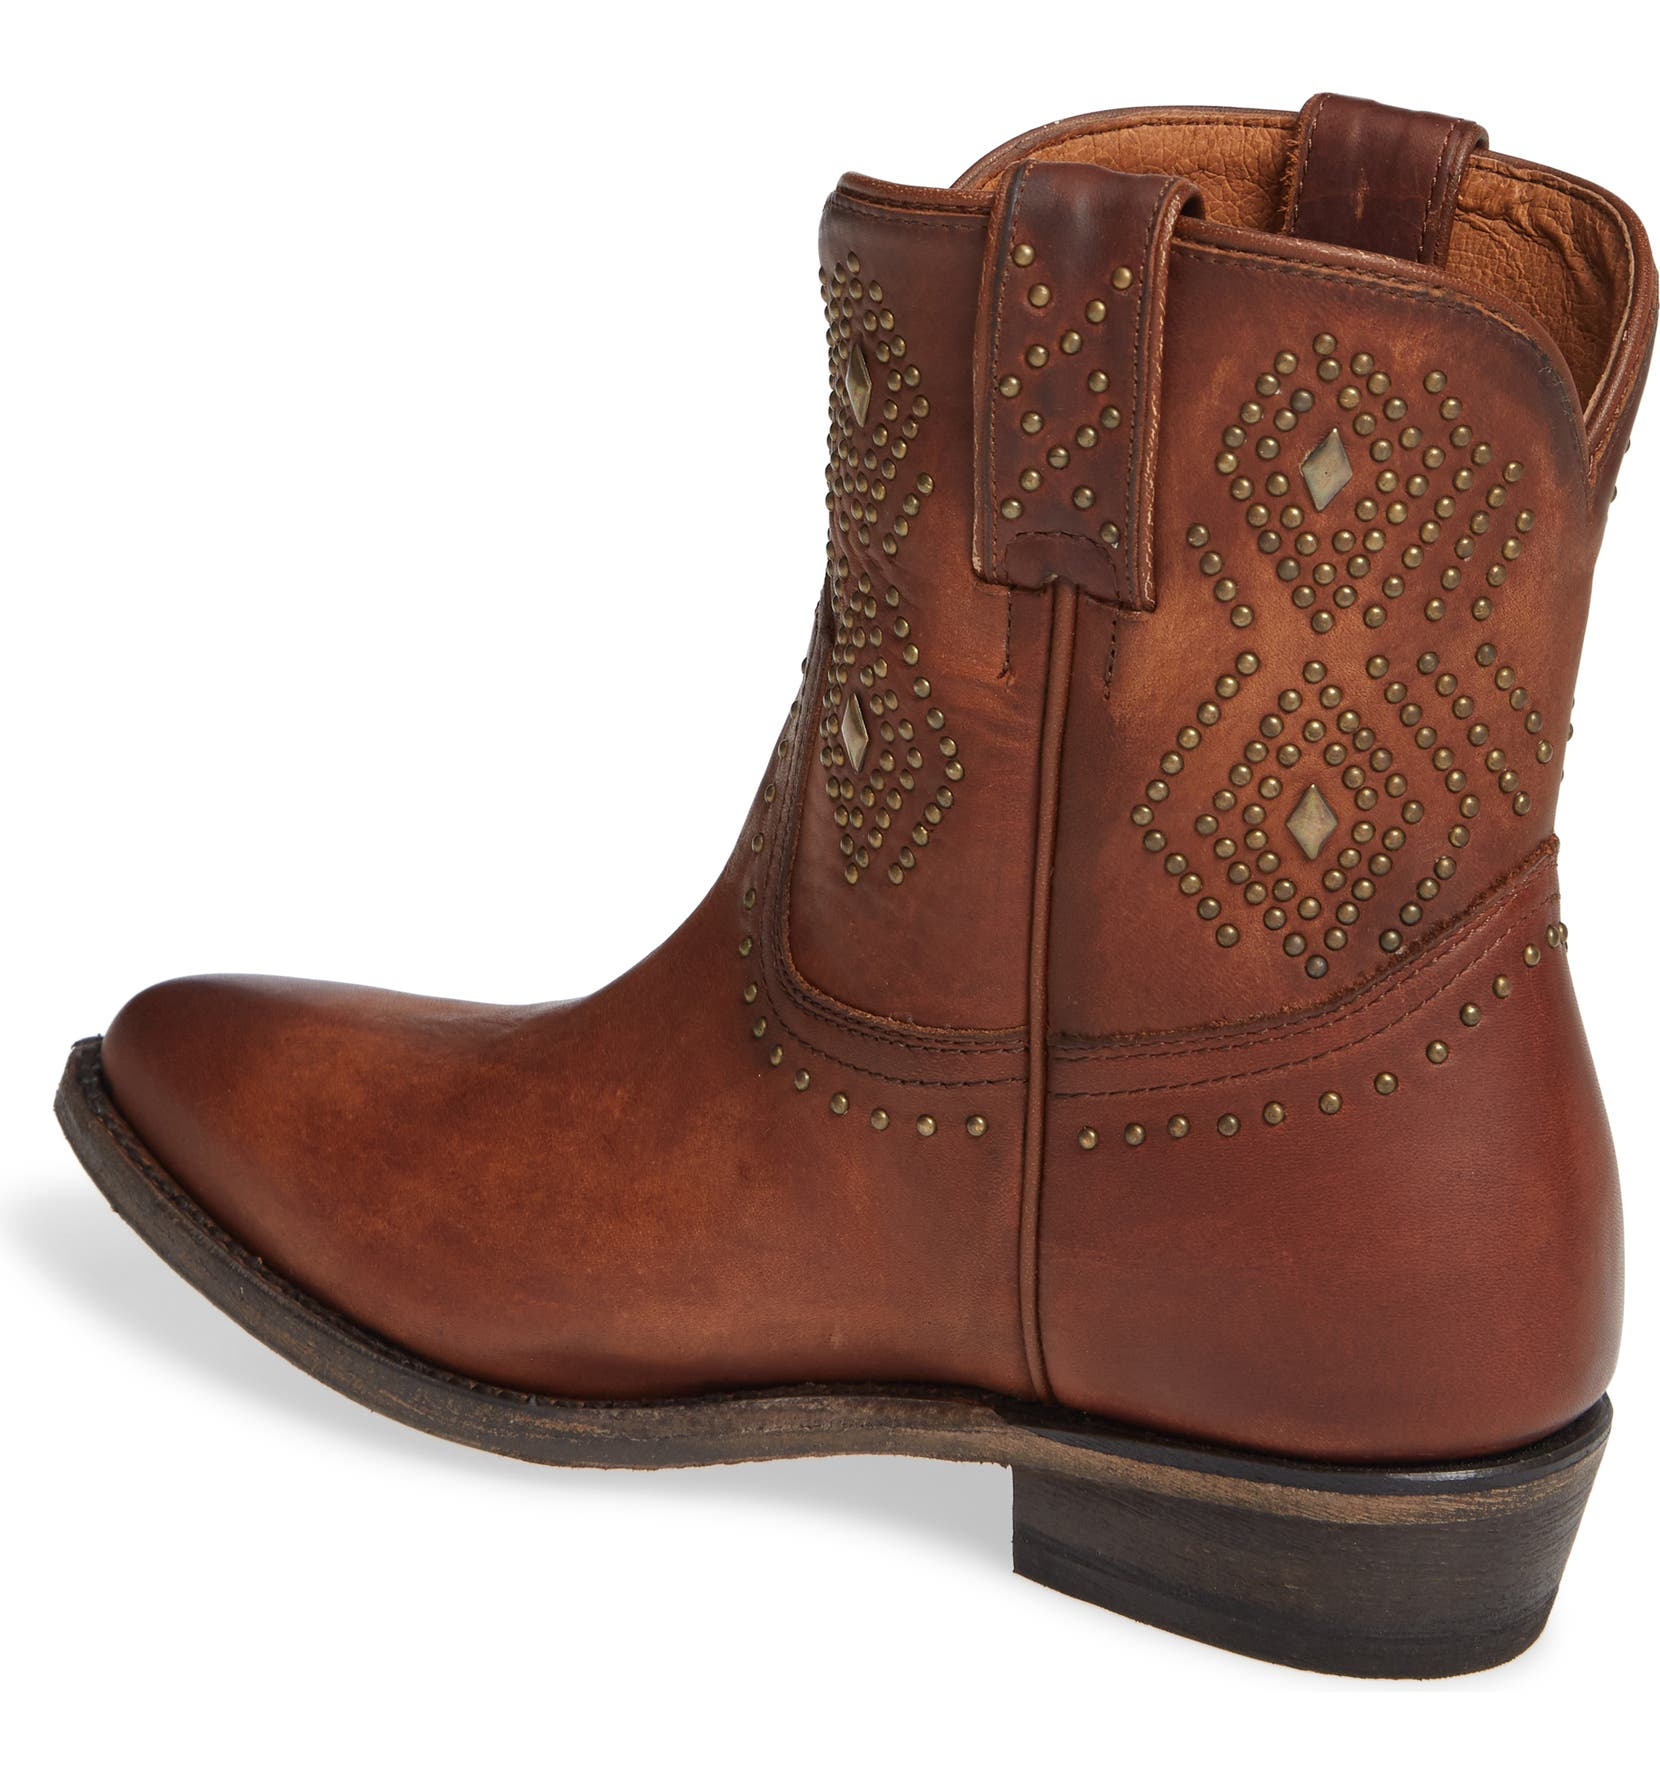 8b661ec8a39 Frye Billy Stud Short Western Boot (Women)